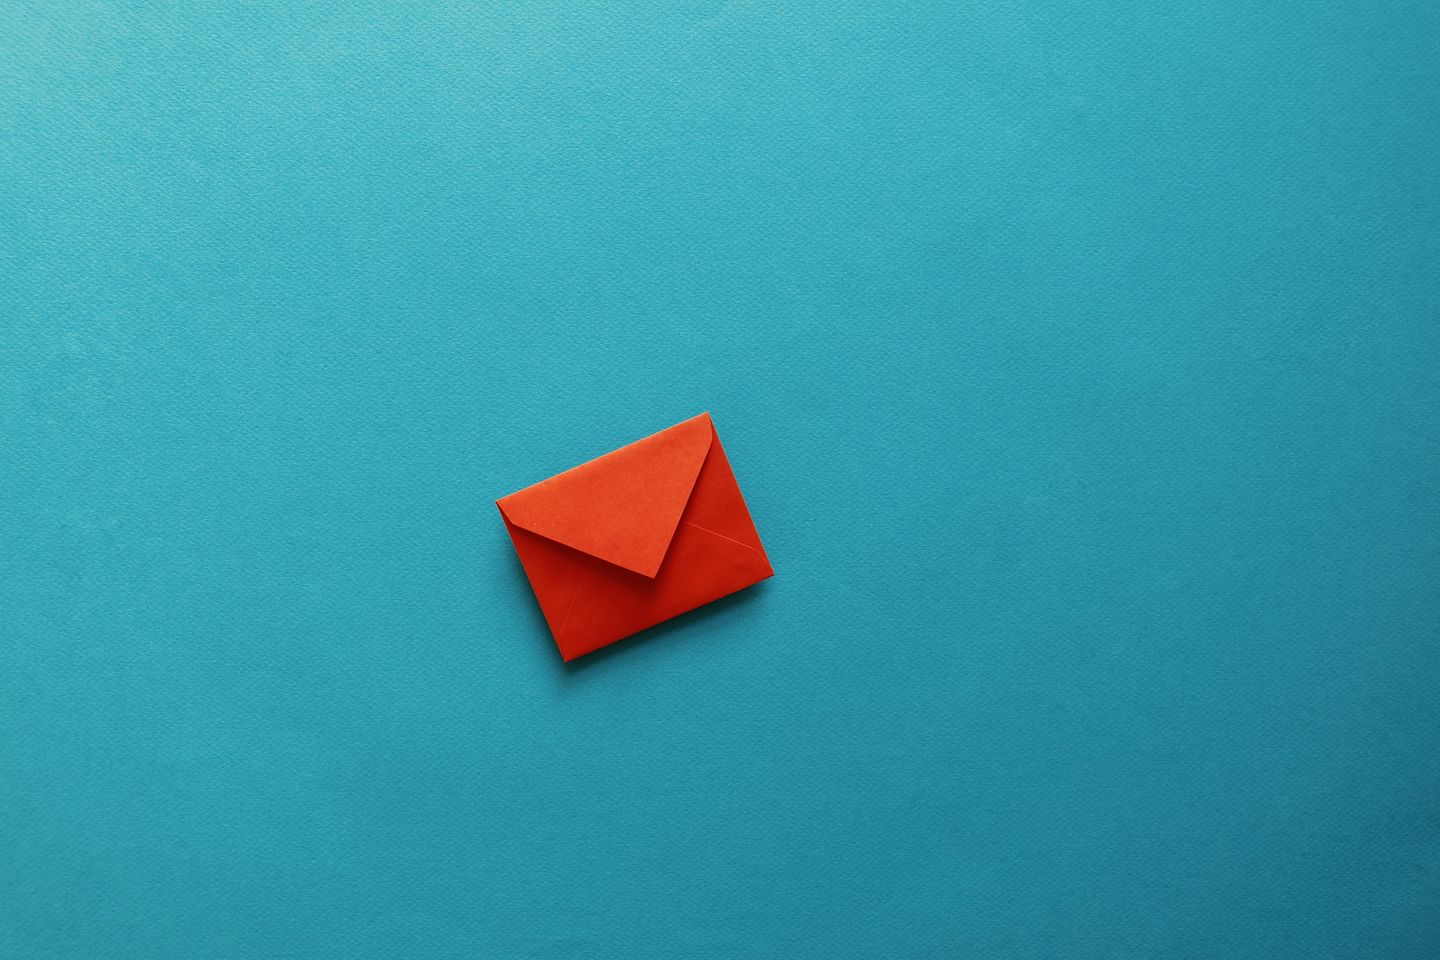 Application for your studies at the HWR Berlin: a small red envelope lies on a turquoise surface. Photo: © tolgart/iStock/Getty Images Plus